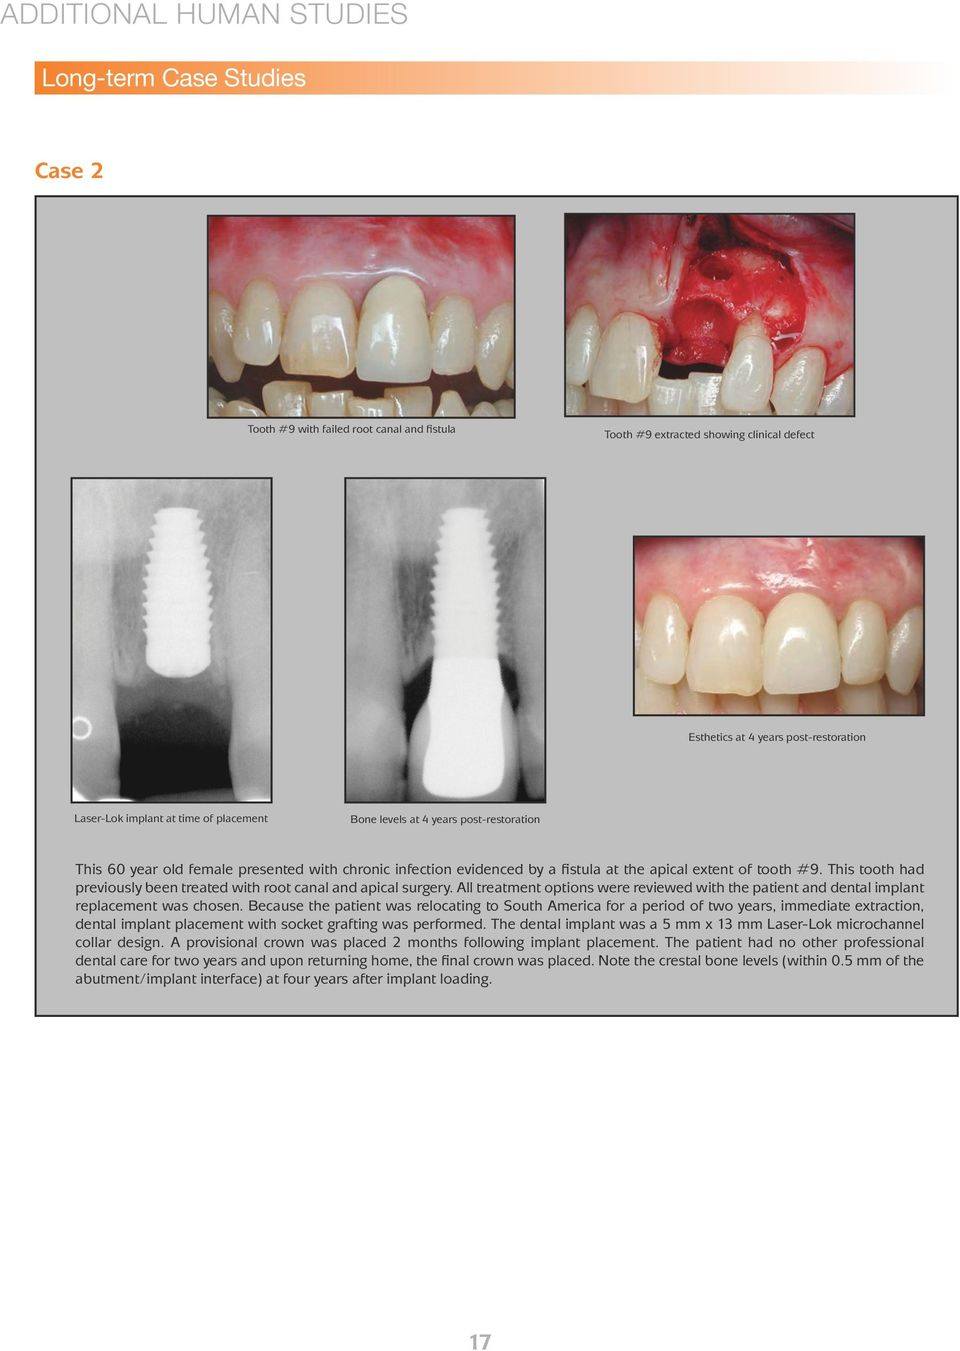 This tooth had previously been treated with root canal and apical surgery. All treatment options were reviewed with the patient and dental implant replacement was chosen.